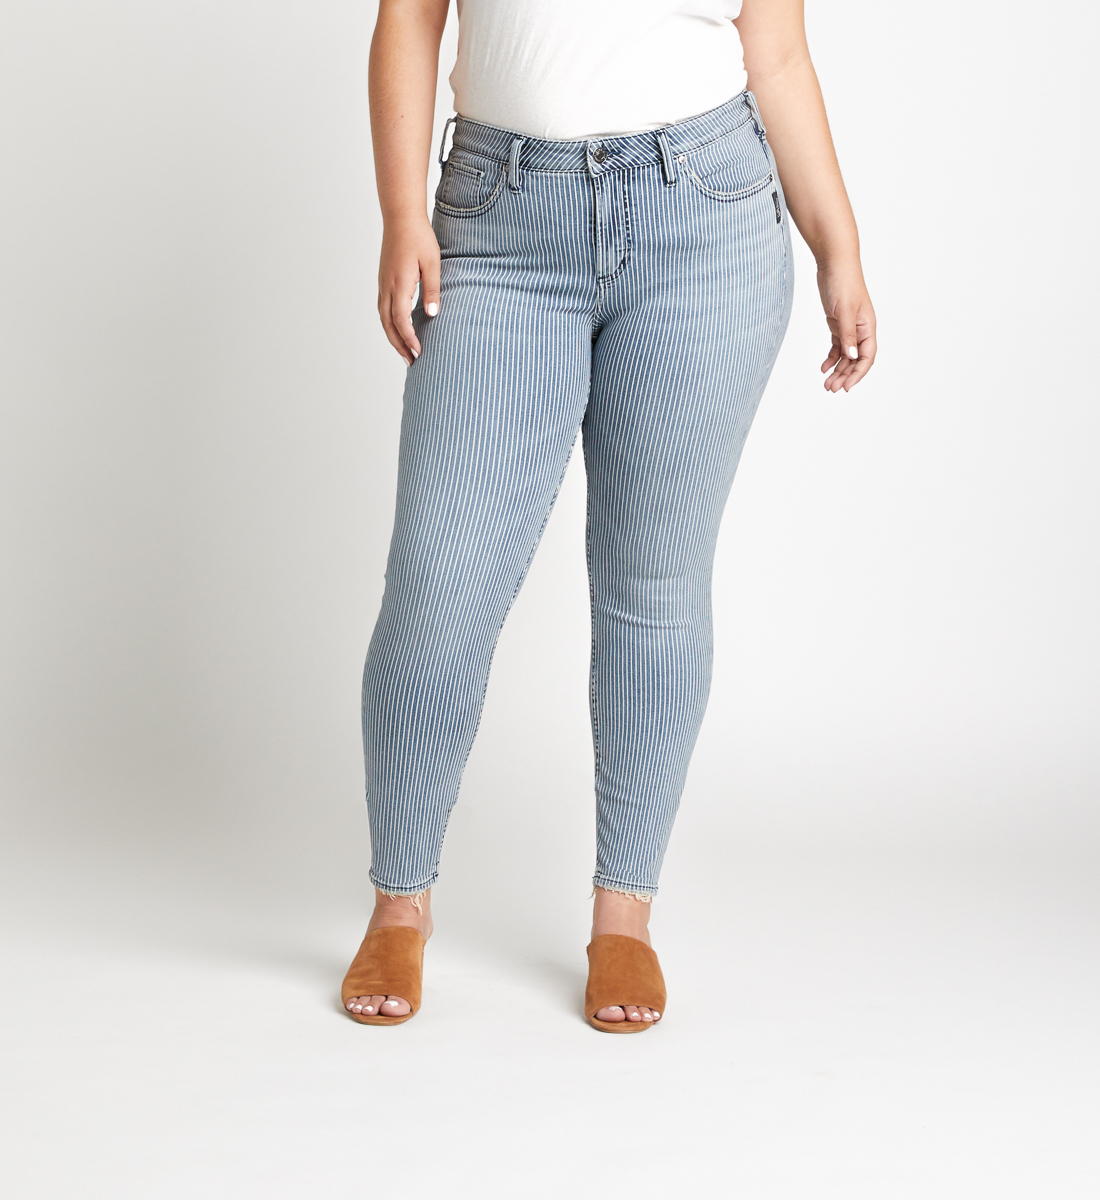 Avery High Rise Pinstripe Skinny Jeans Plus Size Front